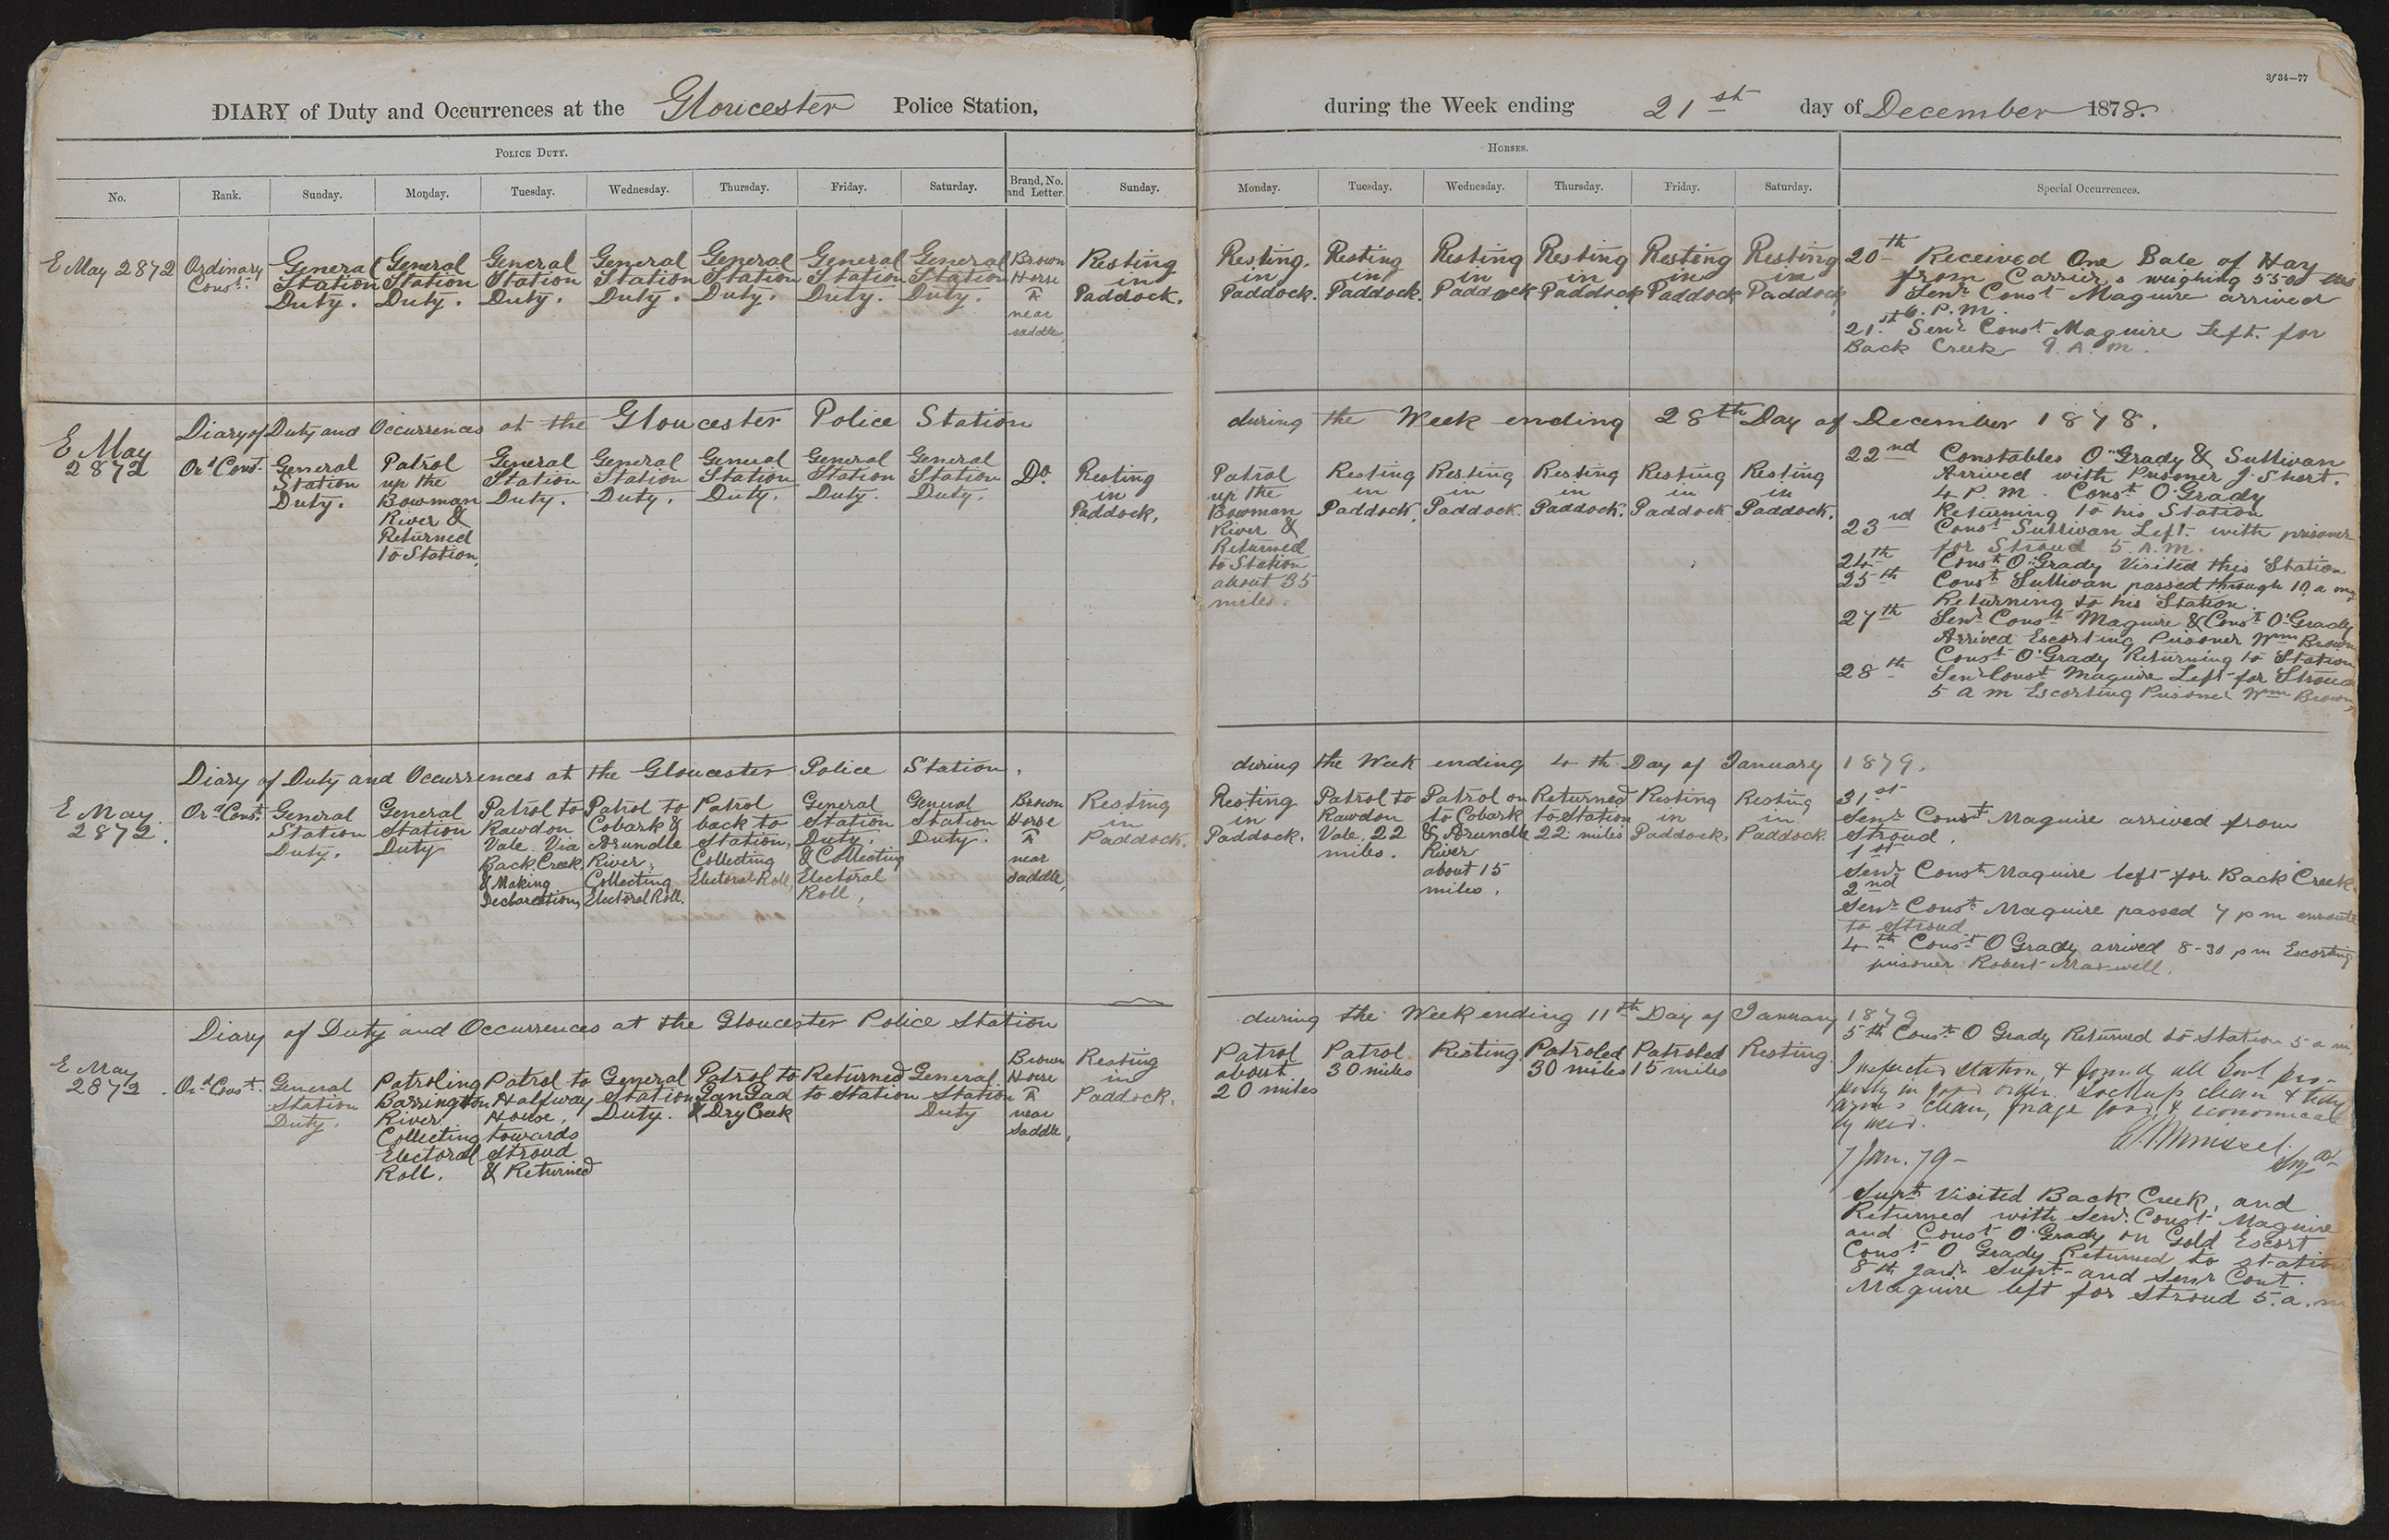 Diary of duty and occurrences at the Gloucester Police Station during the week ending the 21st day of December 1878